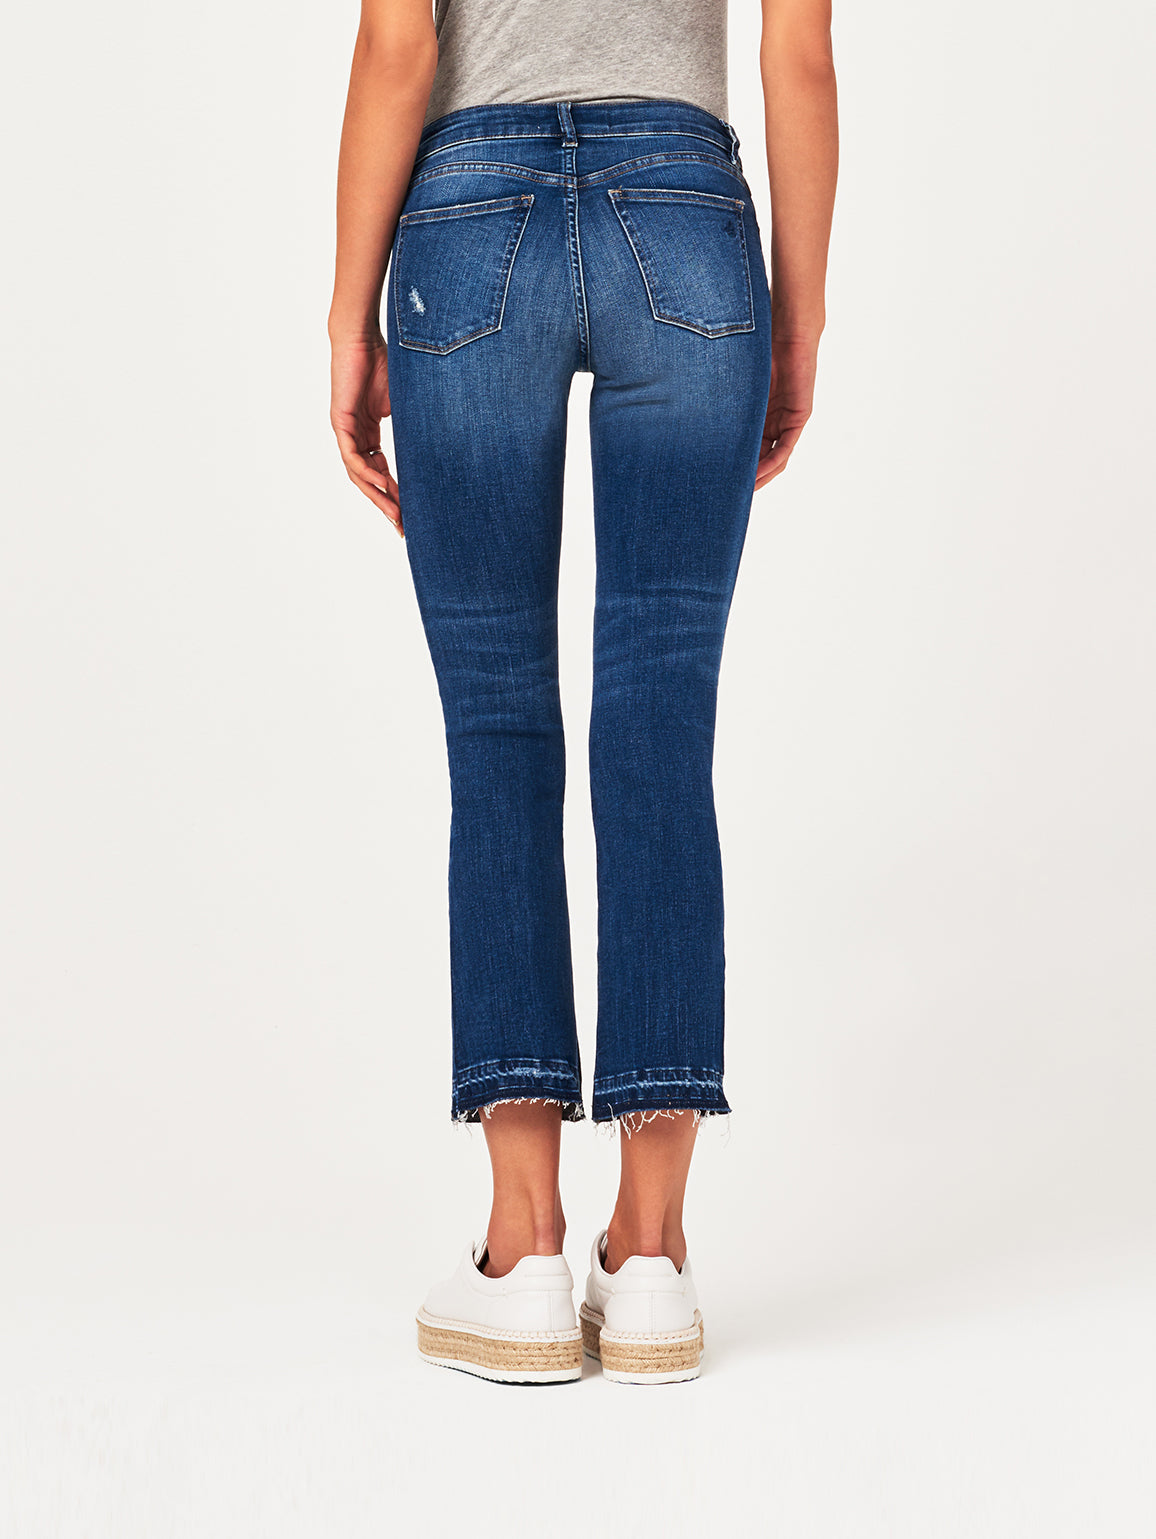 Lara Mid Rise Cropped Flare | Elmwood DL 1961 Denim